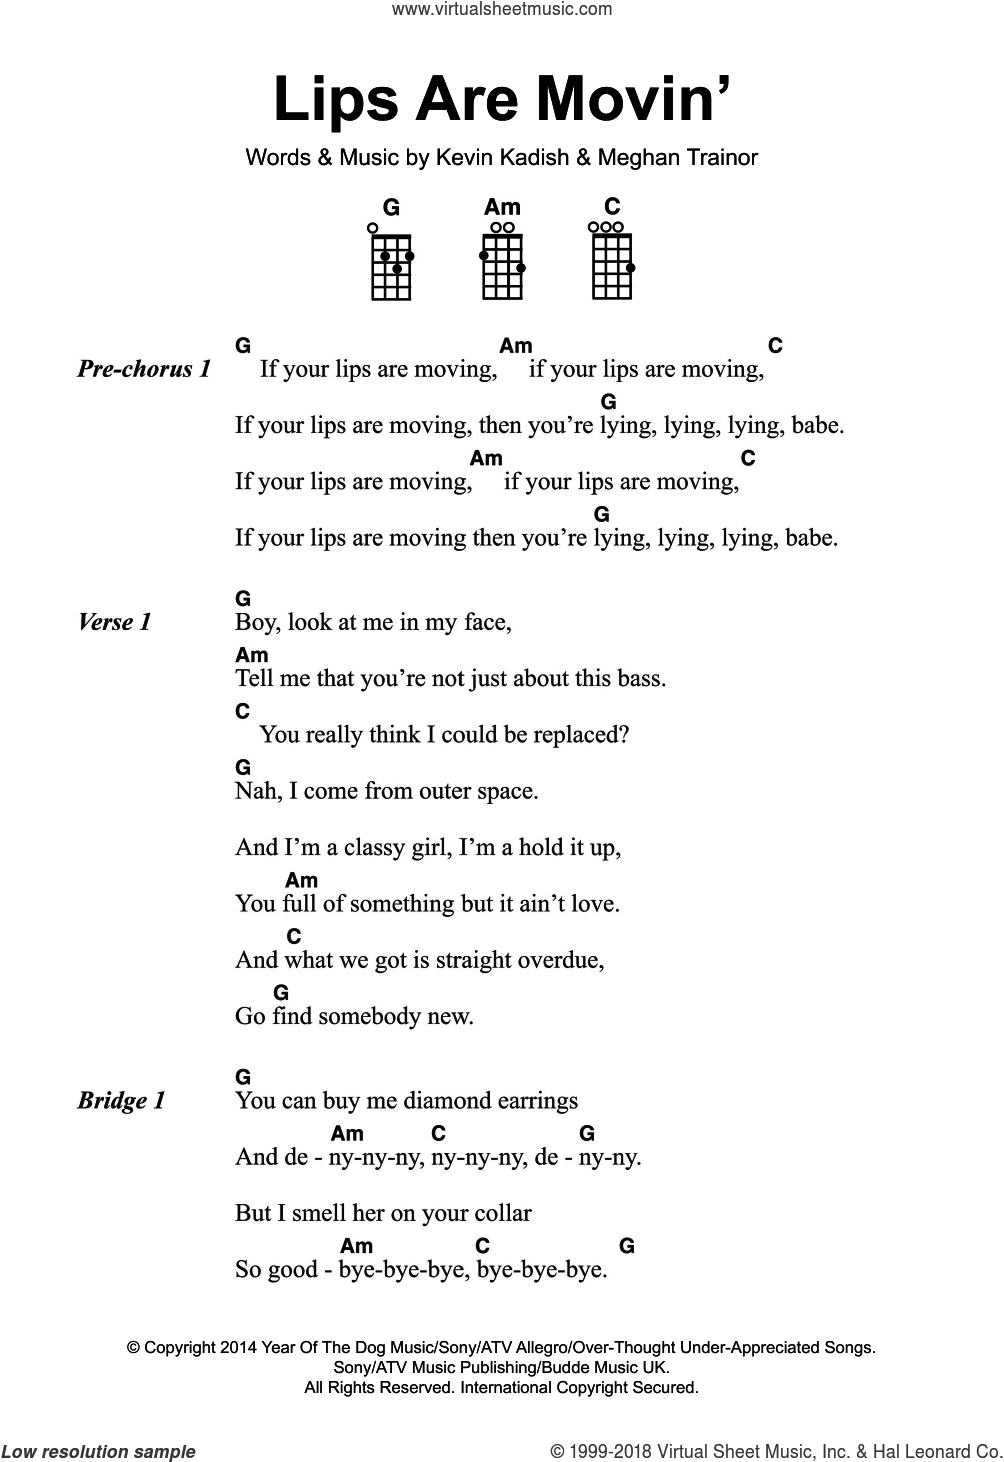 Lips Are Movin' sheet music for voice, piano or guitar by Meghan Trainor and Kevin Kadish, intermediate skill level